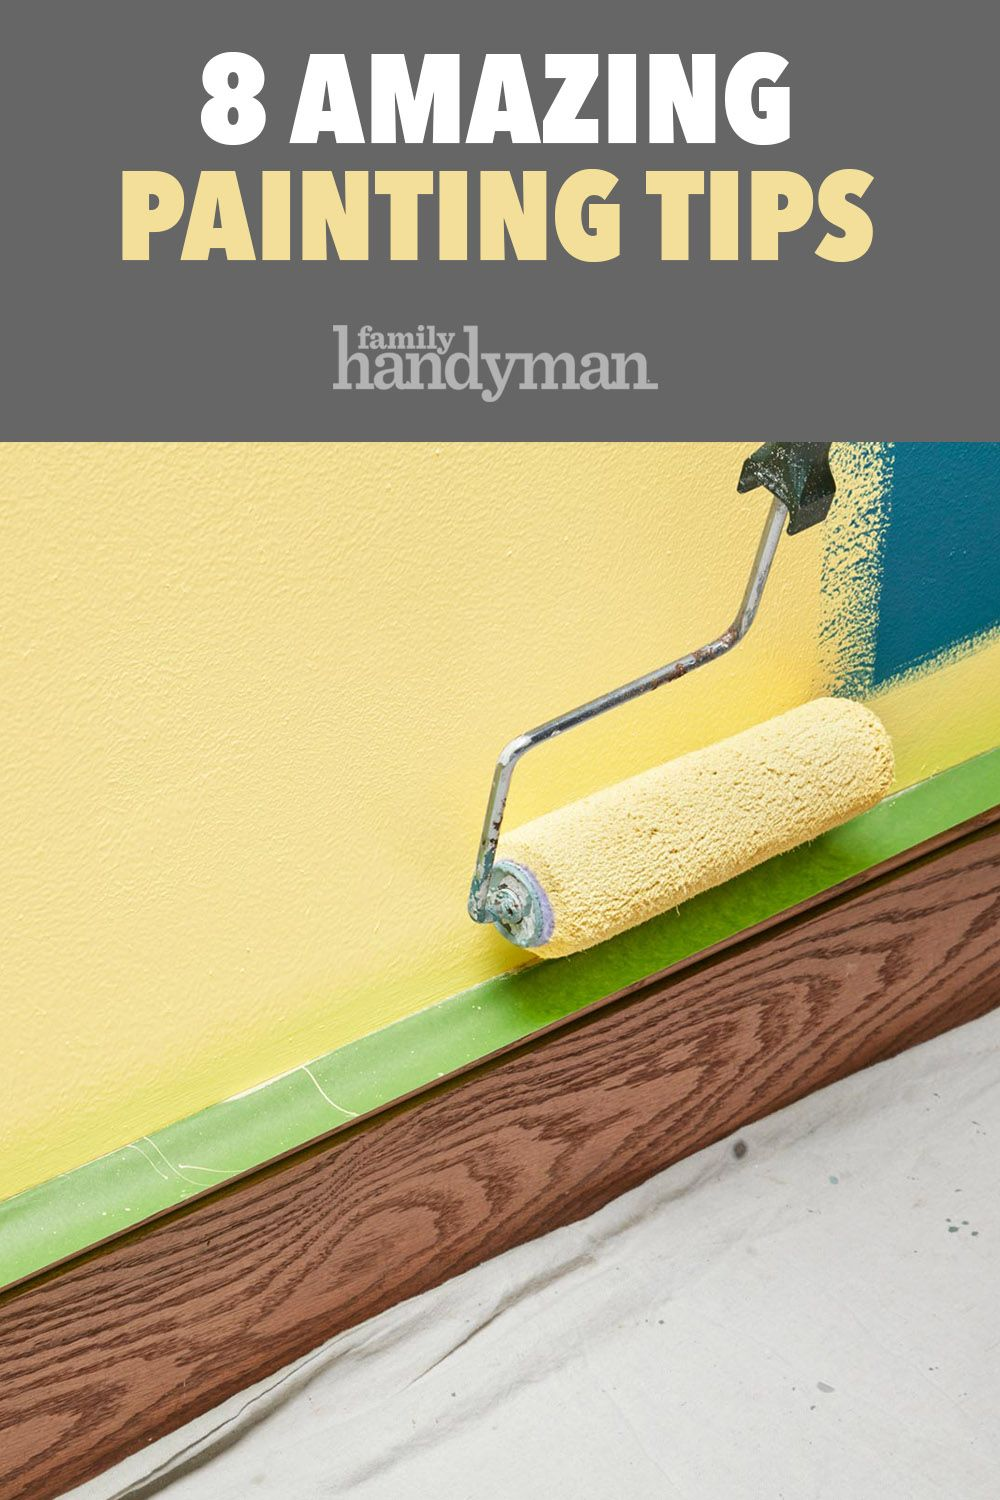 8 Great Painting Tips Painting Tips Painting Trim Diy Home Repair